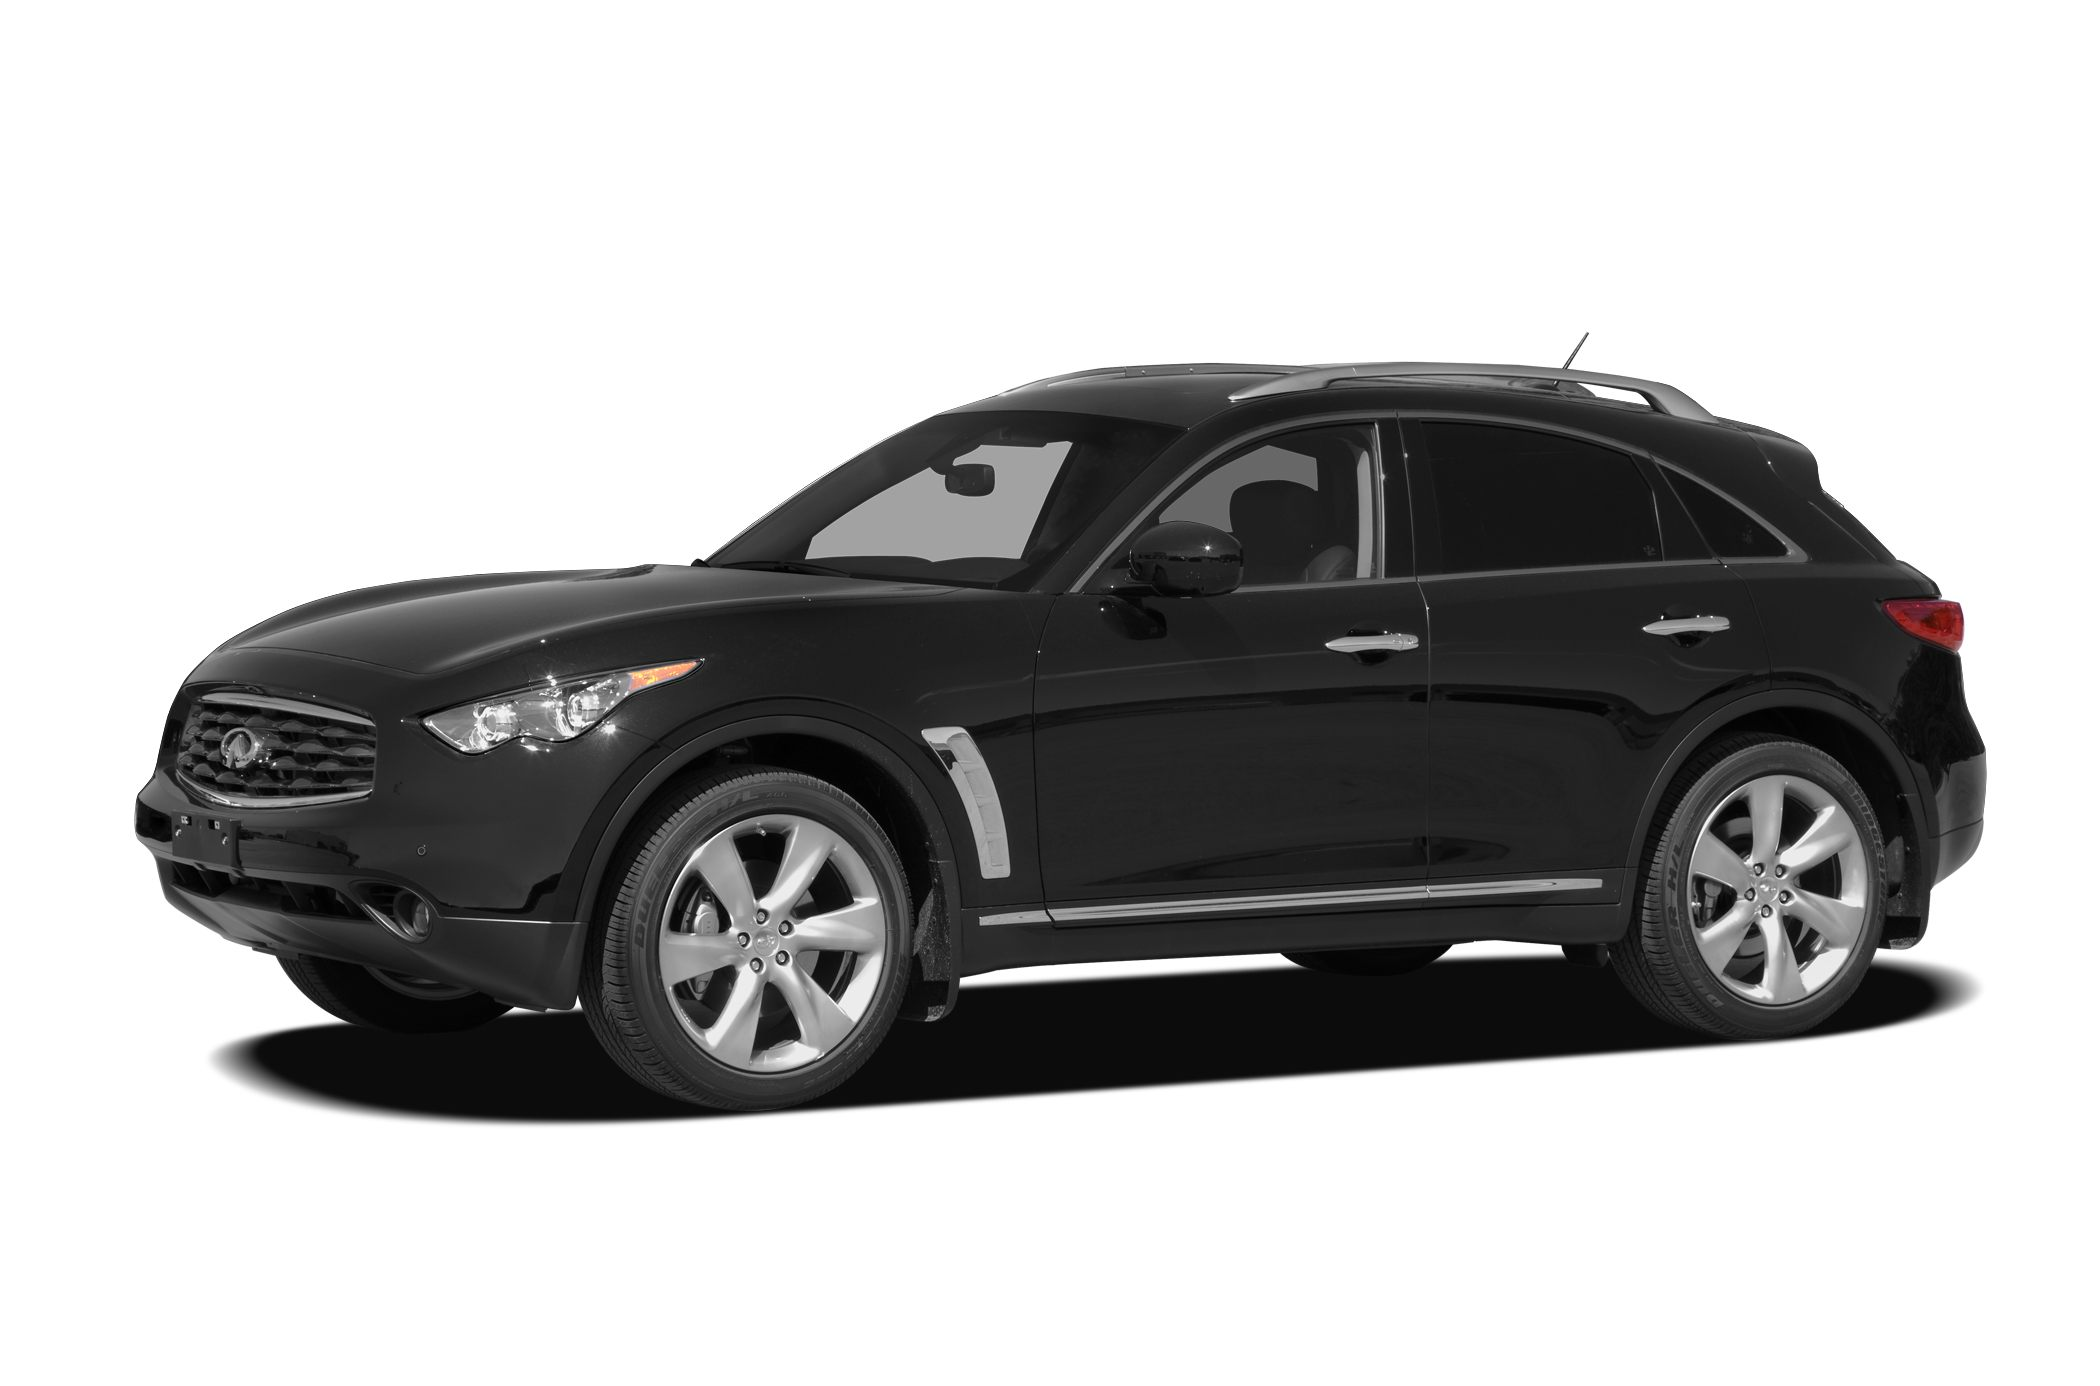 sale for infinity suv infiniti htm ottawa used on certified